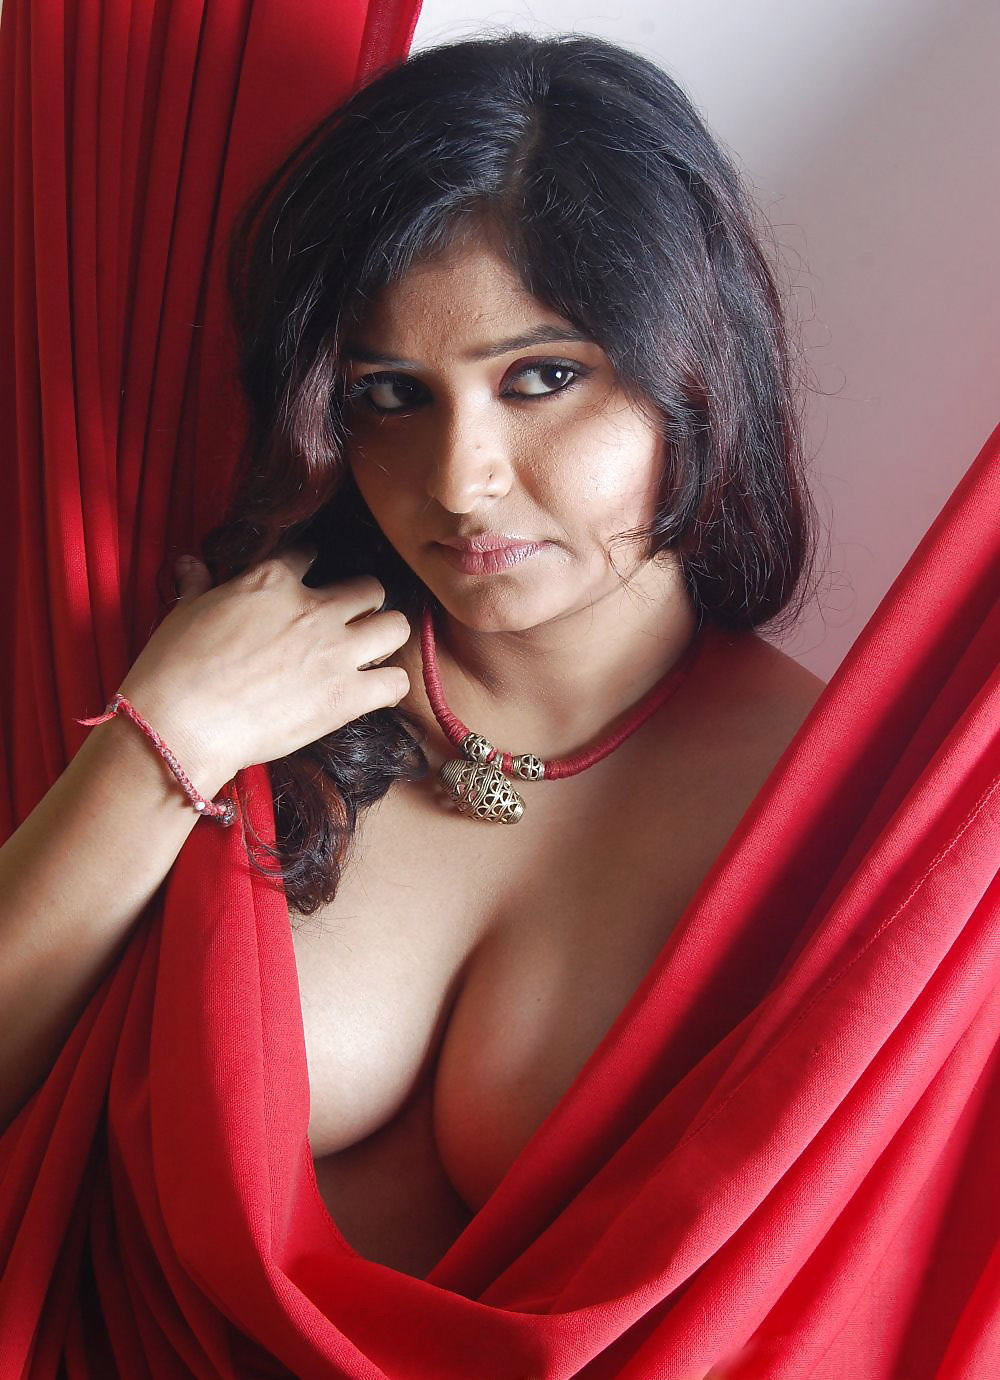 Dhaka hot girl stripping for boy friend